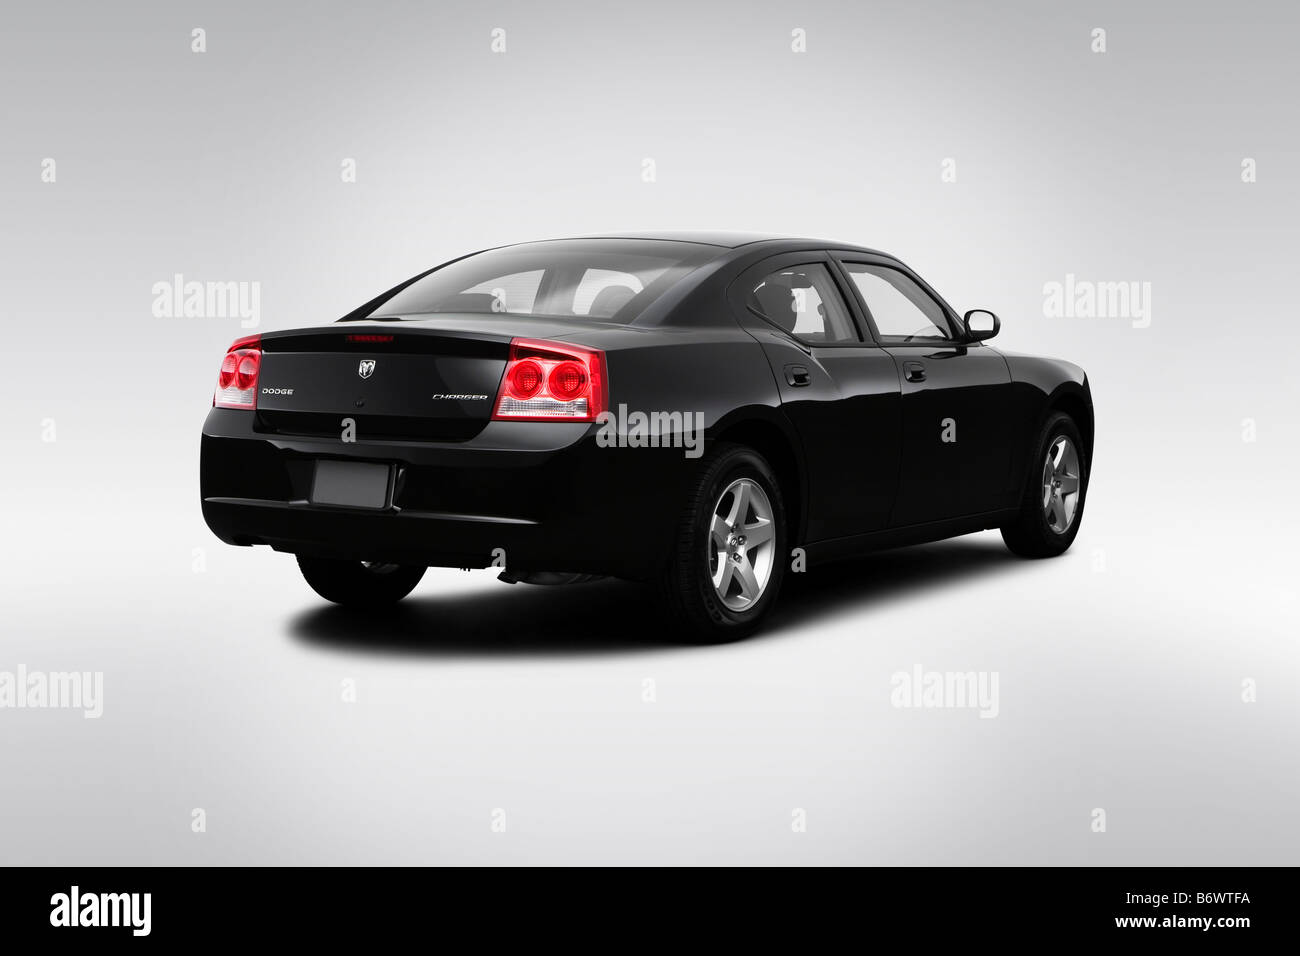 2009 Dodge Charger SE in Black  Rear angle view Stock Photo